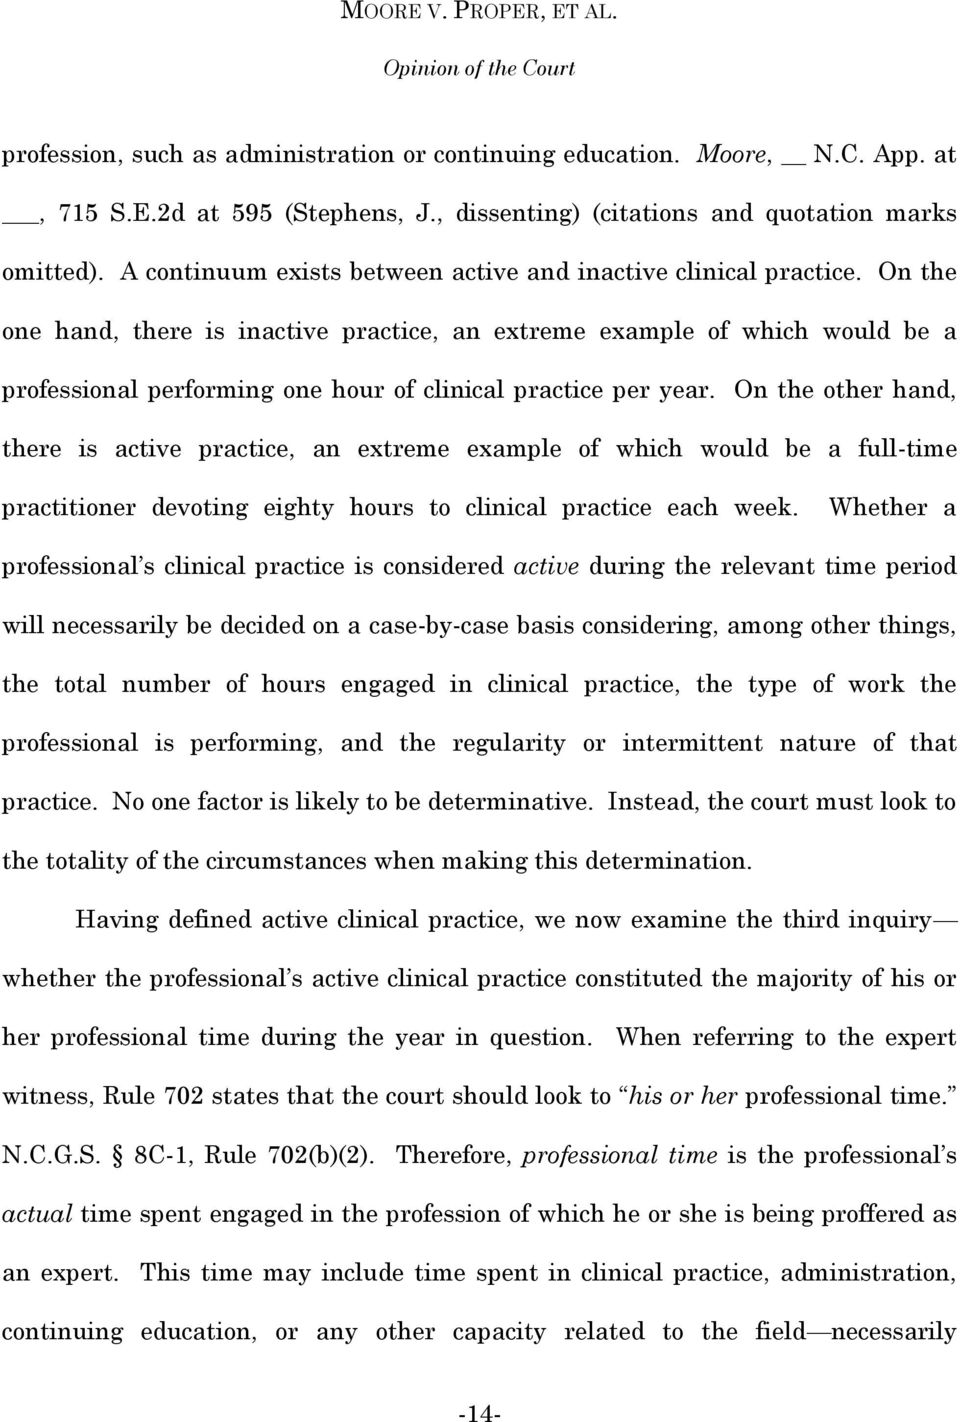 On the one hand, there is inactive practice, an extreme example of which would be a professional performing one hour of clinical practice per year.